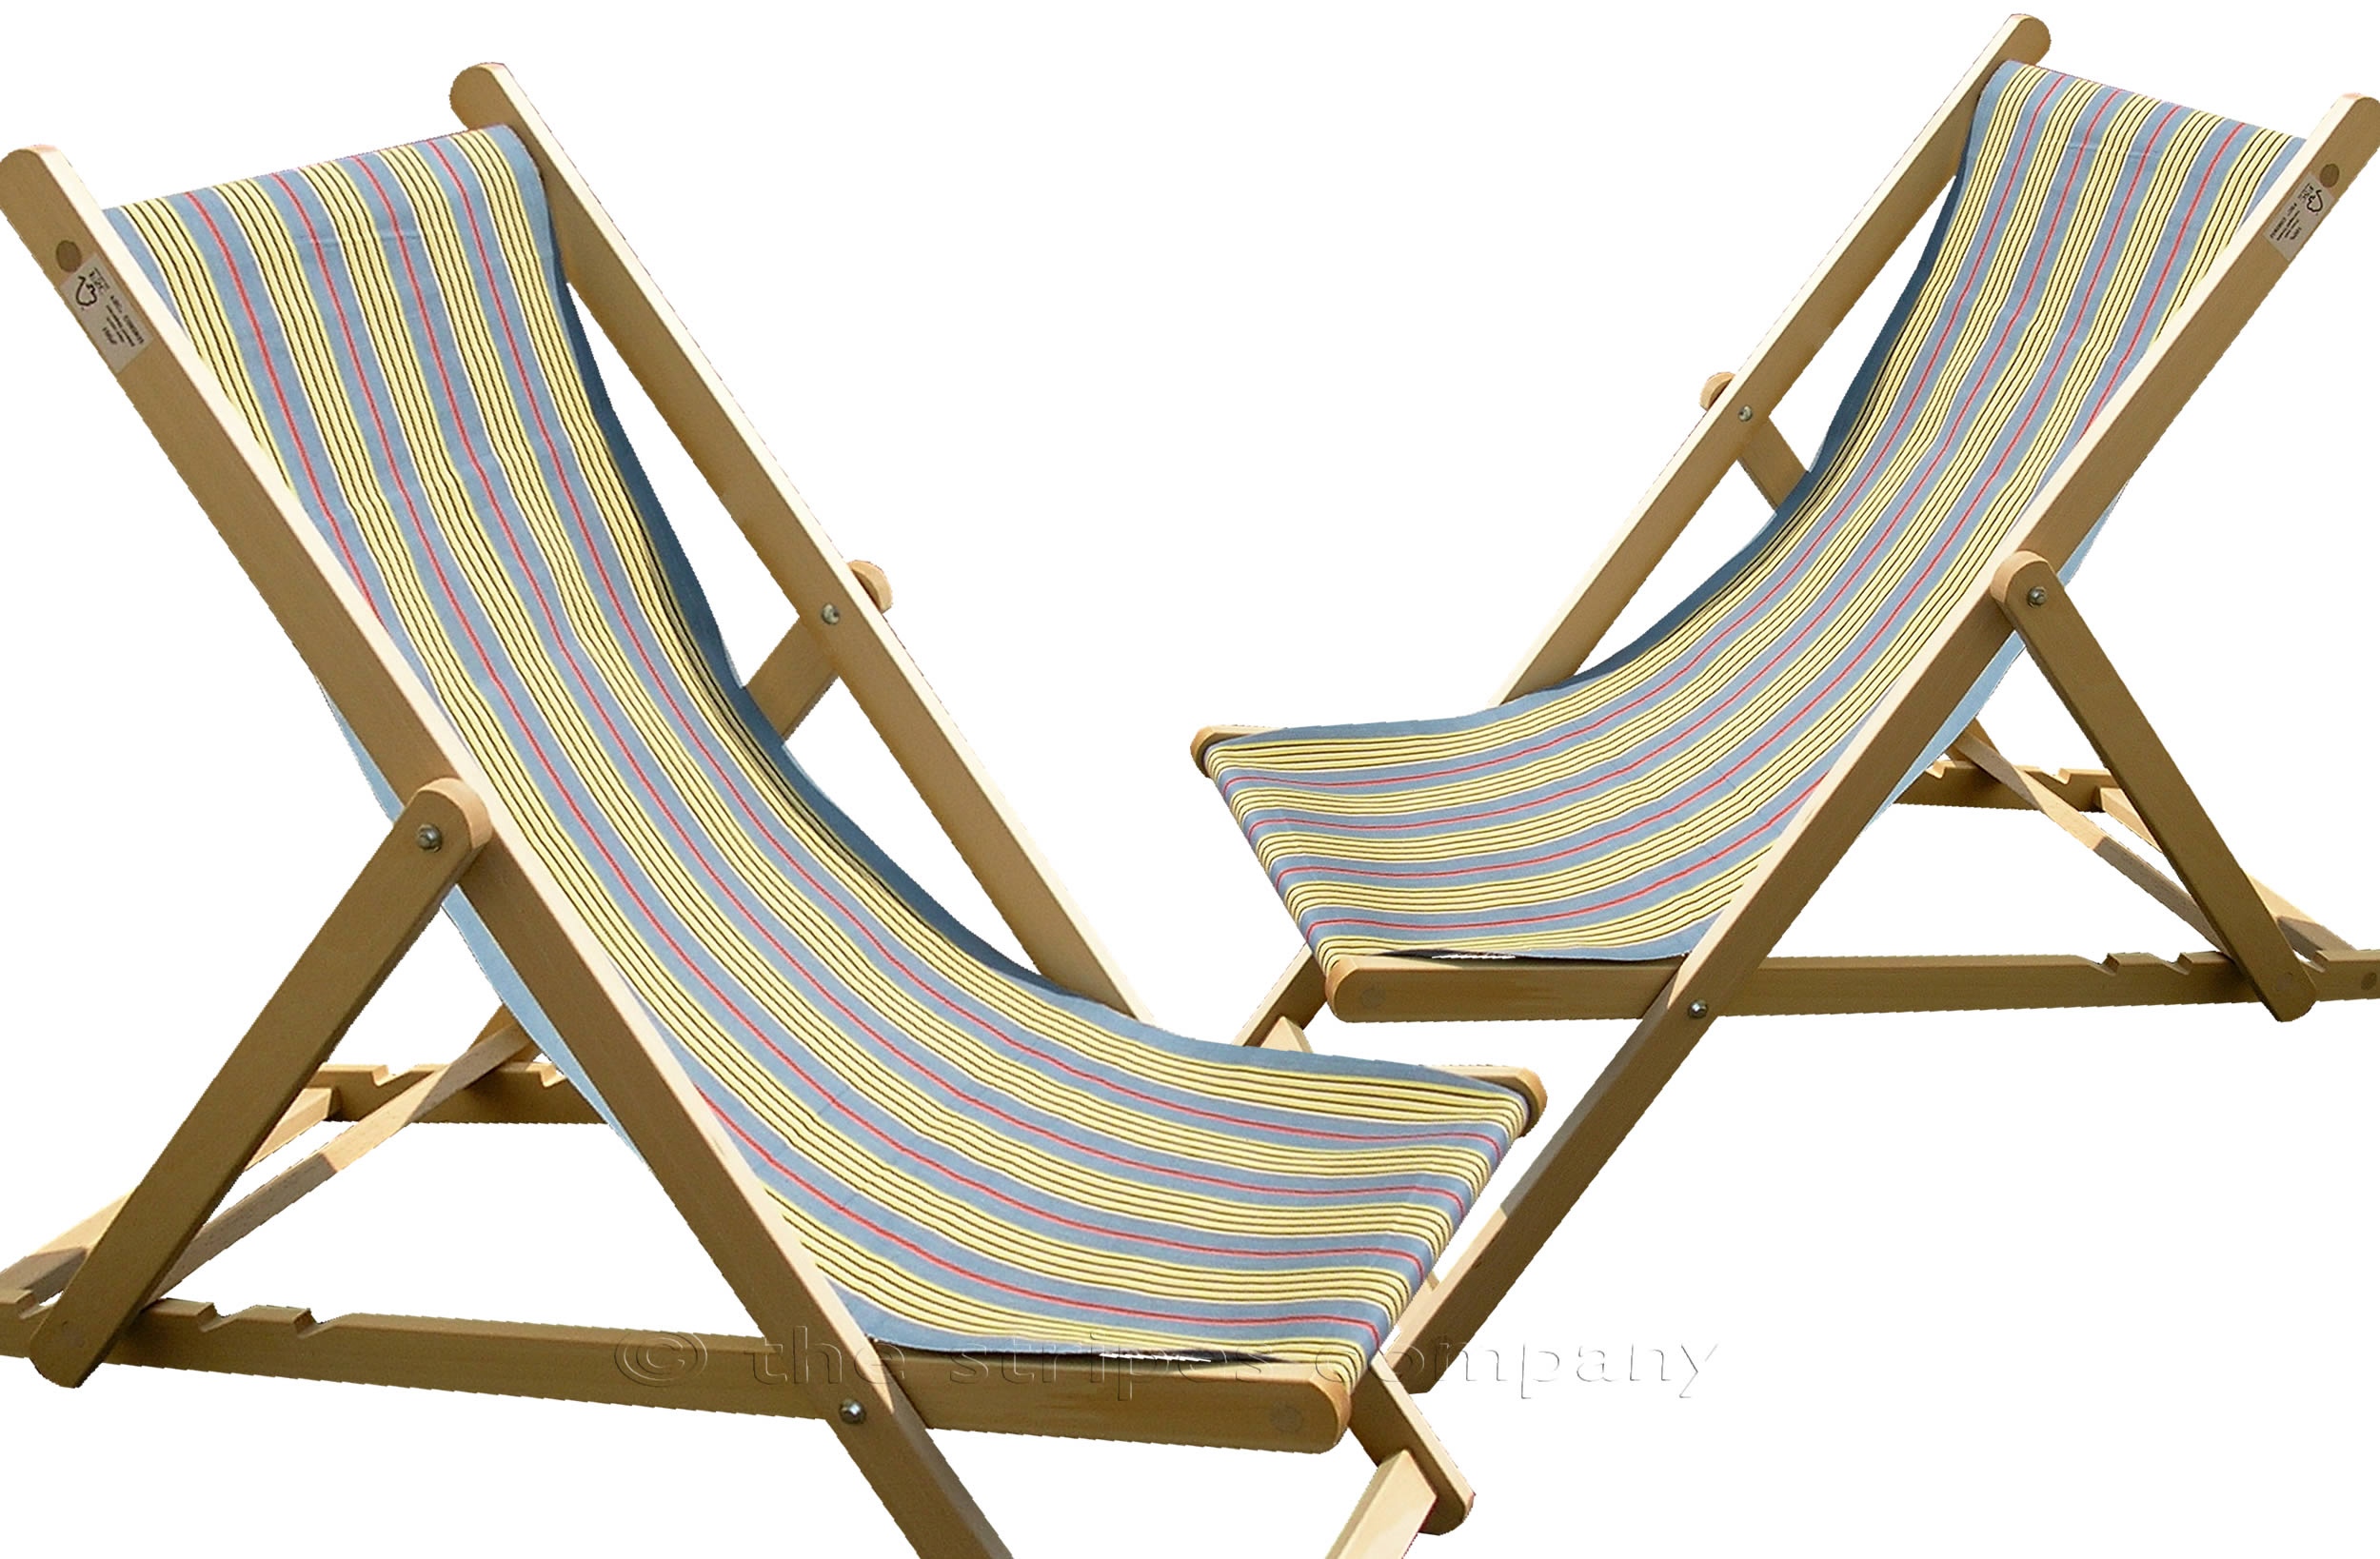 Sky Blue Deckchairs | Wooden Folding Deck Chairs Majorette Stripes